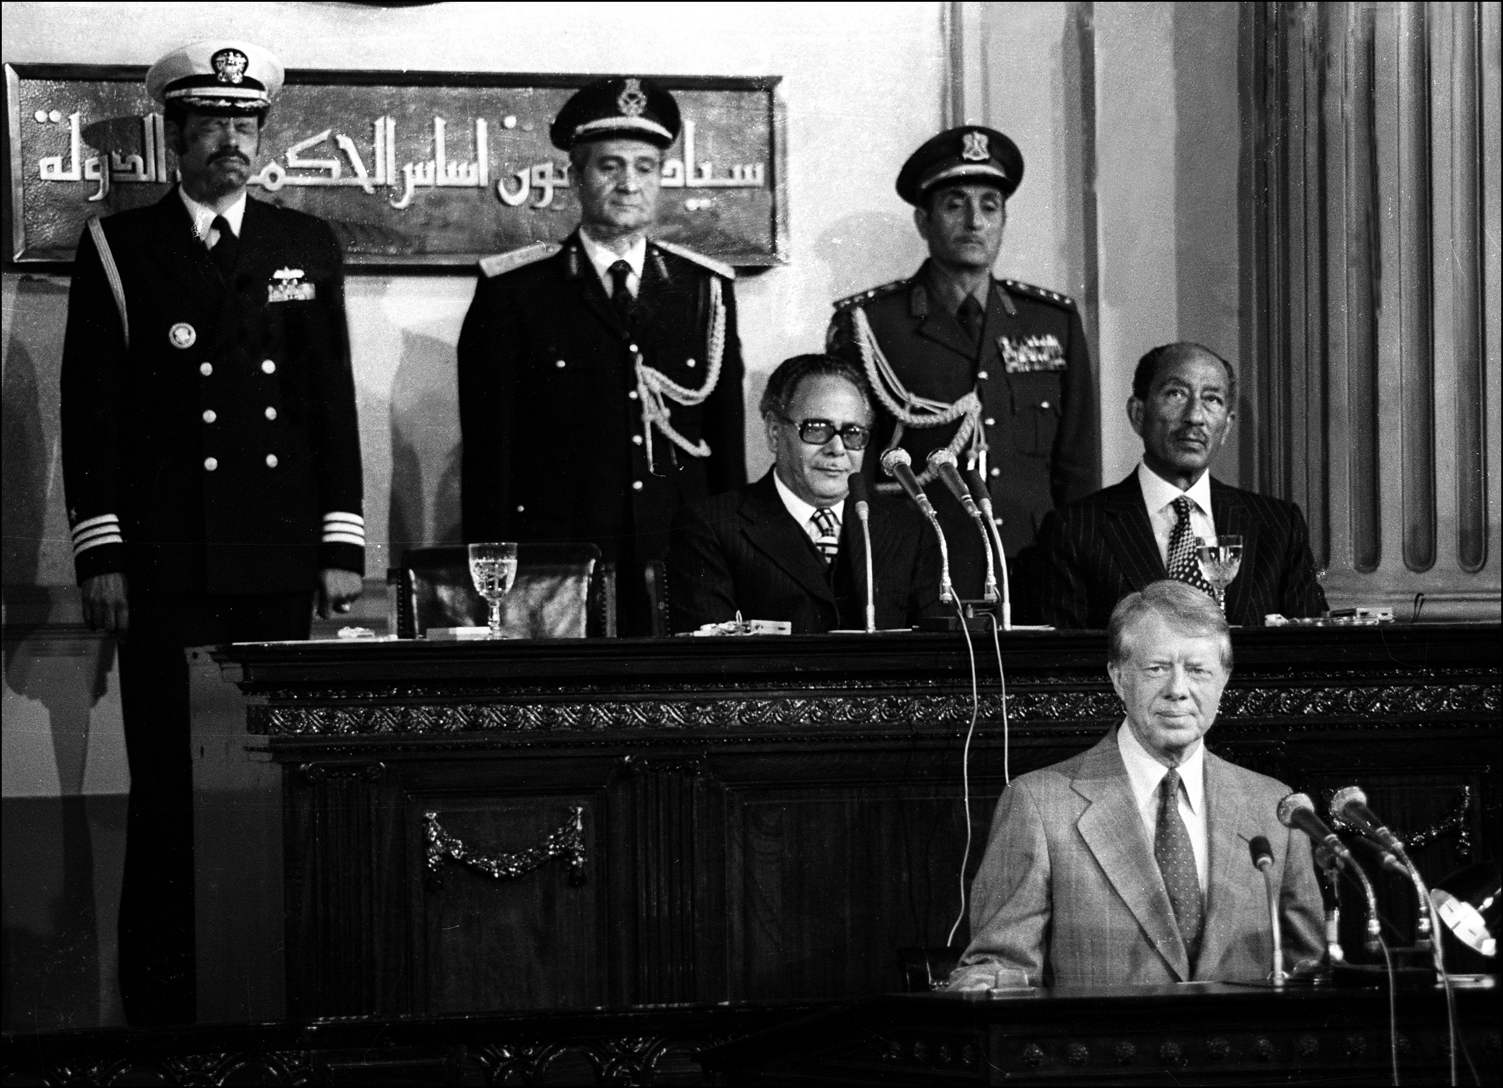 President Jimmy Carter addresses the Egyptian Parliament in Cairo, 1979 as President Sadat looks on. : Sadat-Mubarak 1978-1981 : BILL FOLEY